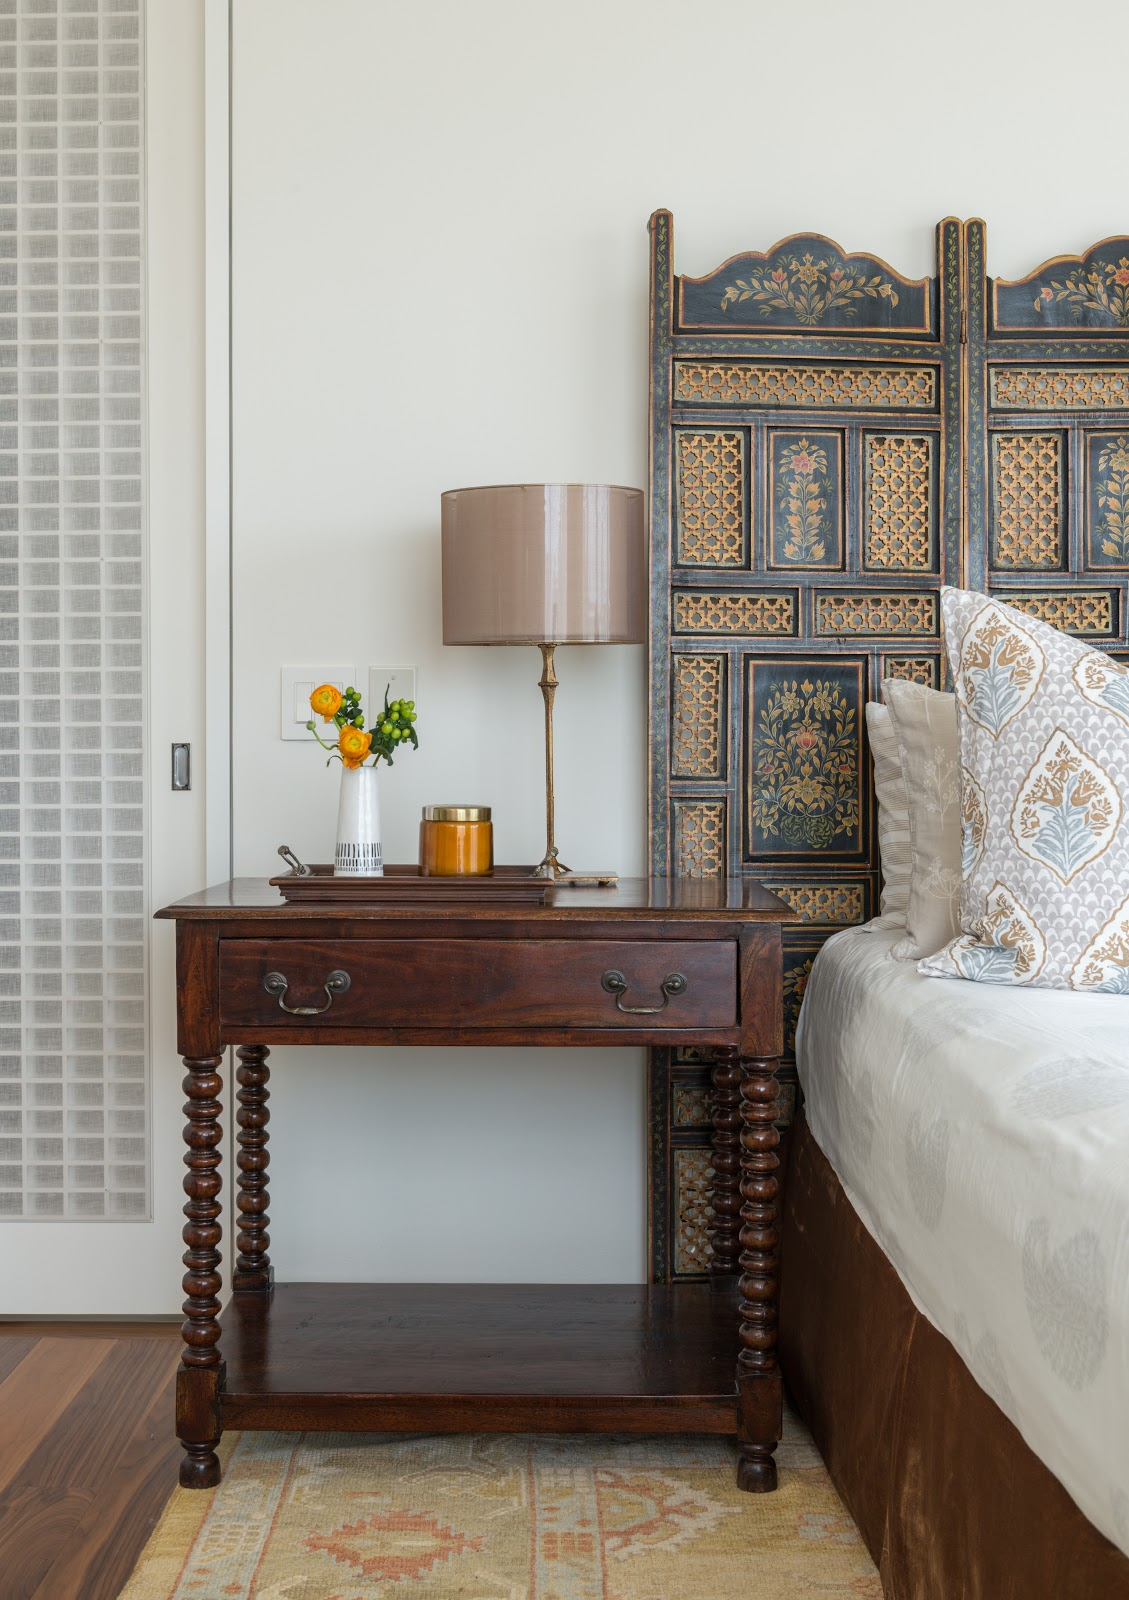 Ornate antique headboard with traditional spindle leg side table in guest bedroom - Laura U Interior Design